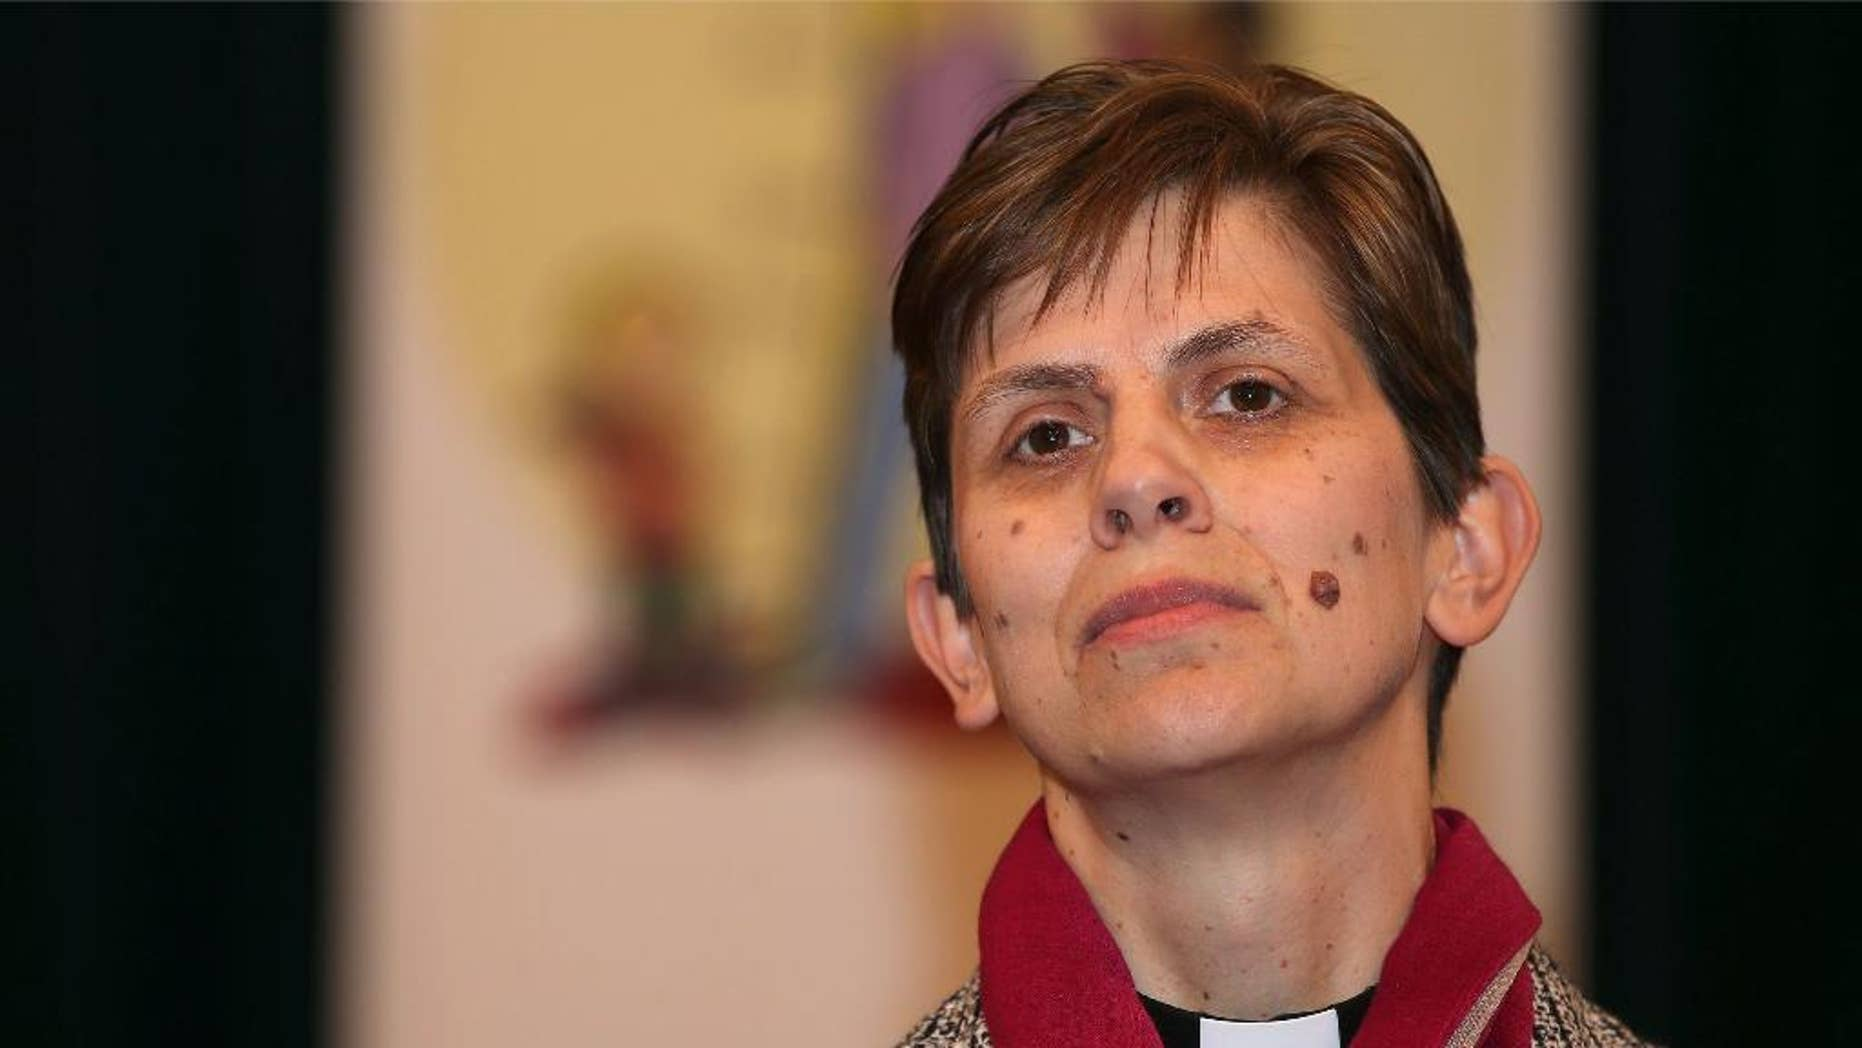 Dec. 17, 2014: Libby Lane pauses as she delivers a speech in the Stockport Town Hall,  after the announcement by the Church of England that she will be appointed as the first female bishop, in Stockport, England.